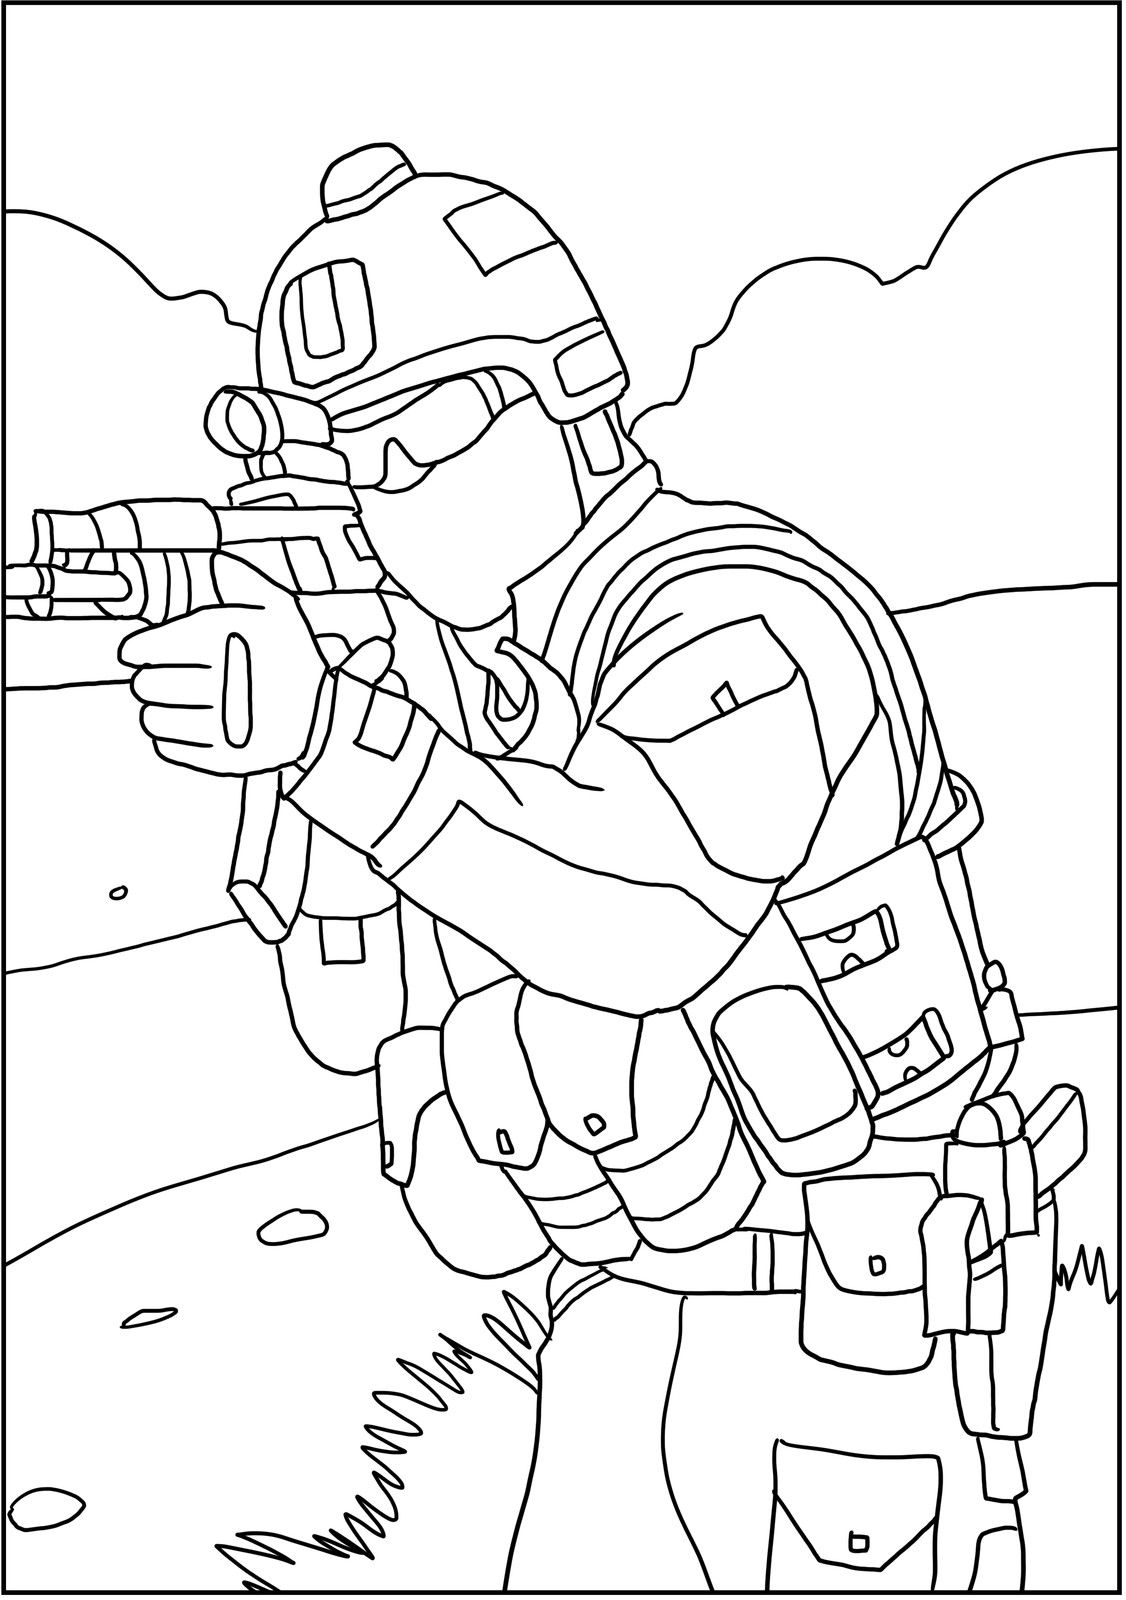 Patriotic Us Military Coloring Pages Coloring Books Military Drawings Grayscale Coloring Books